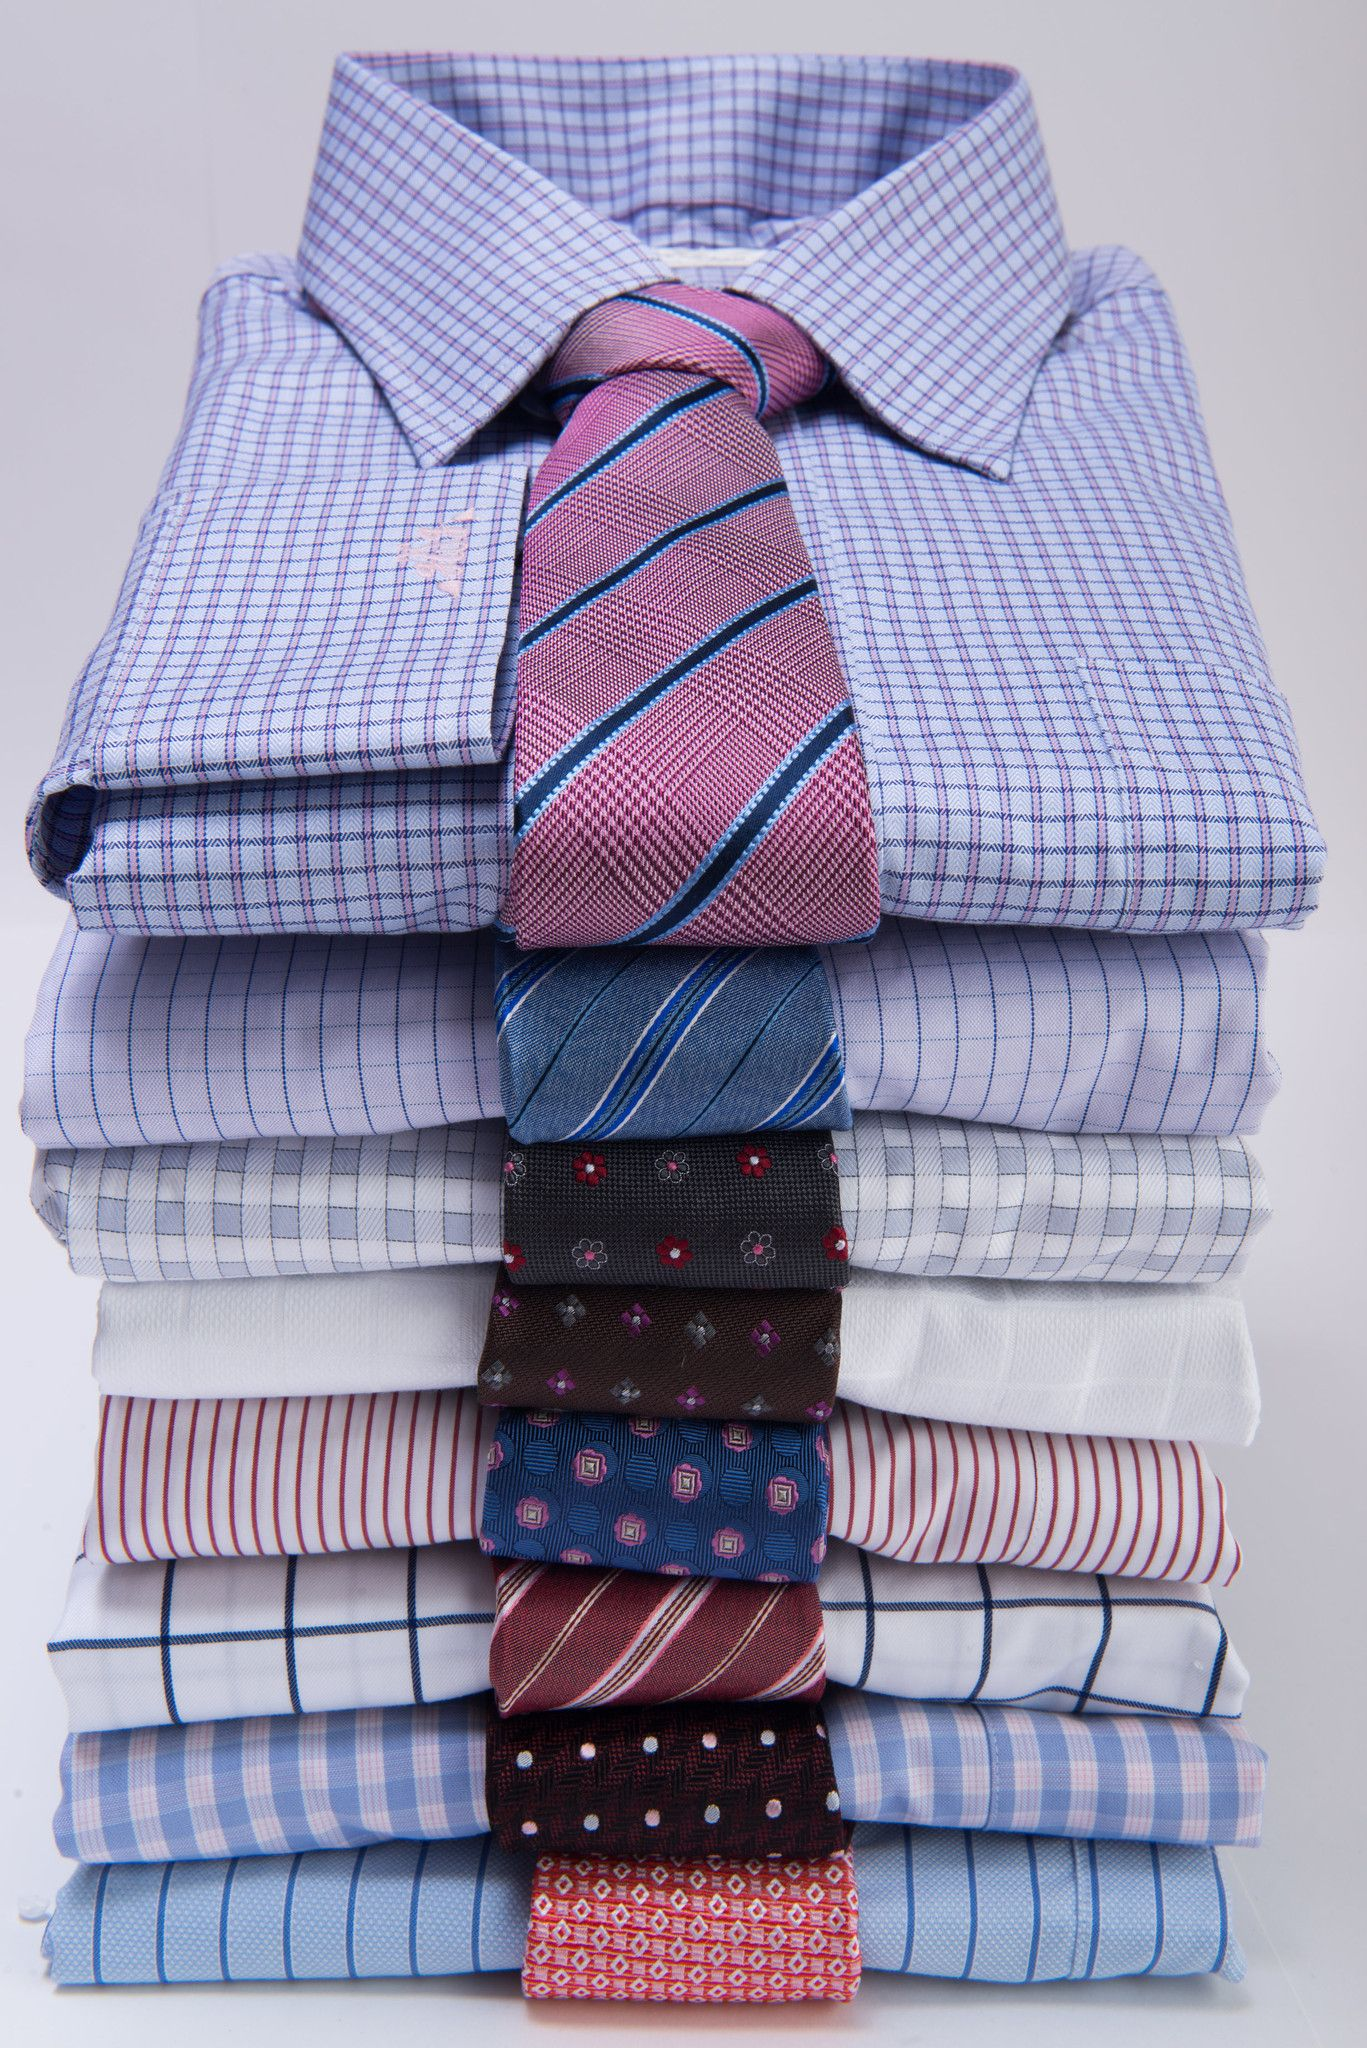 How to match a tie with a dress shirt pinterest dress for How to match shirt and tie